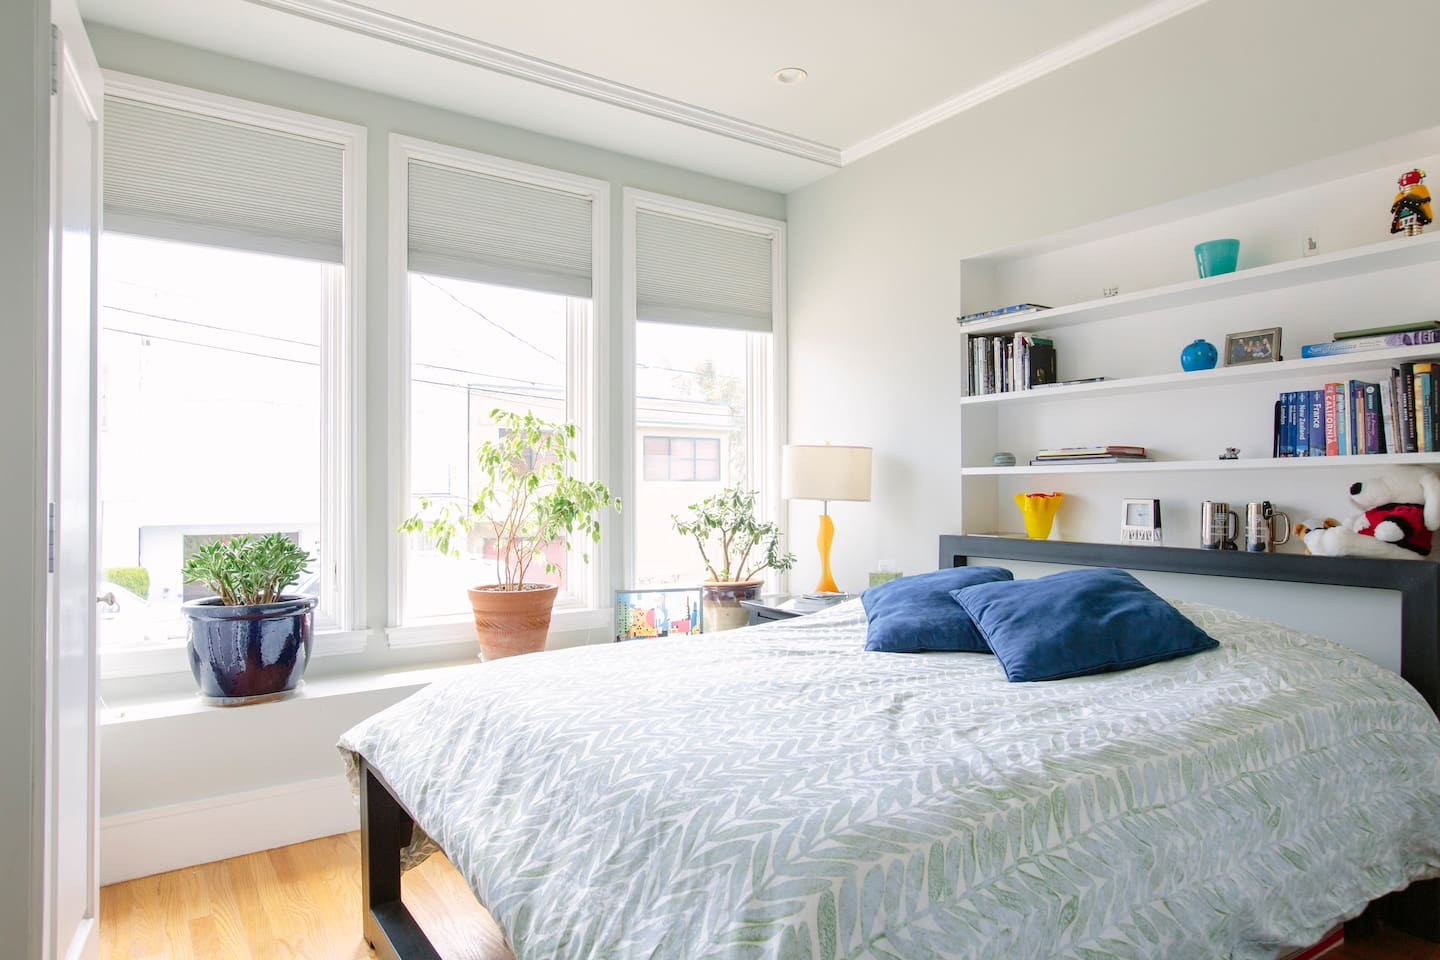 Your bedroom. Bright and sunny.